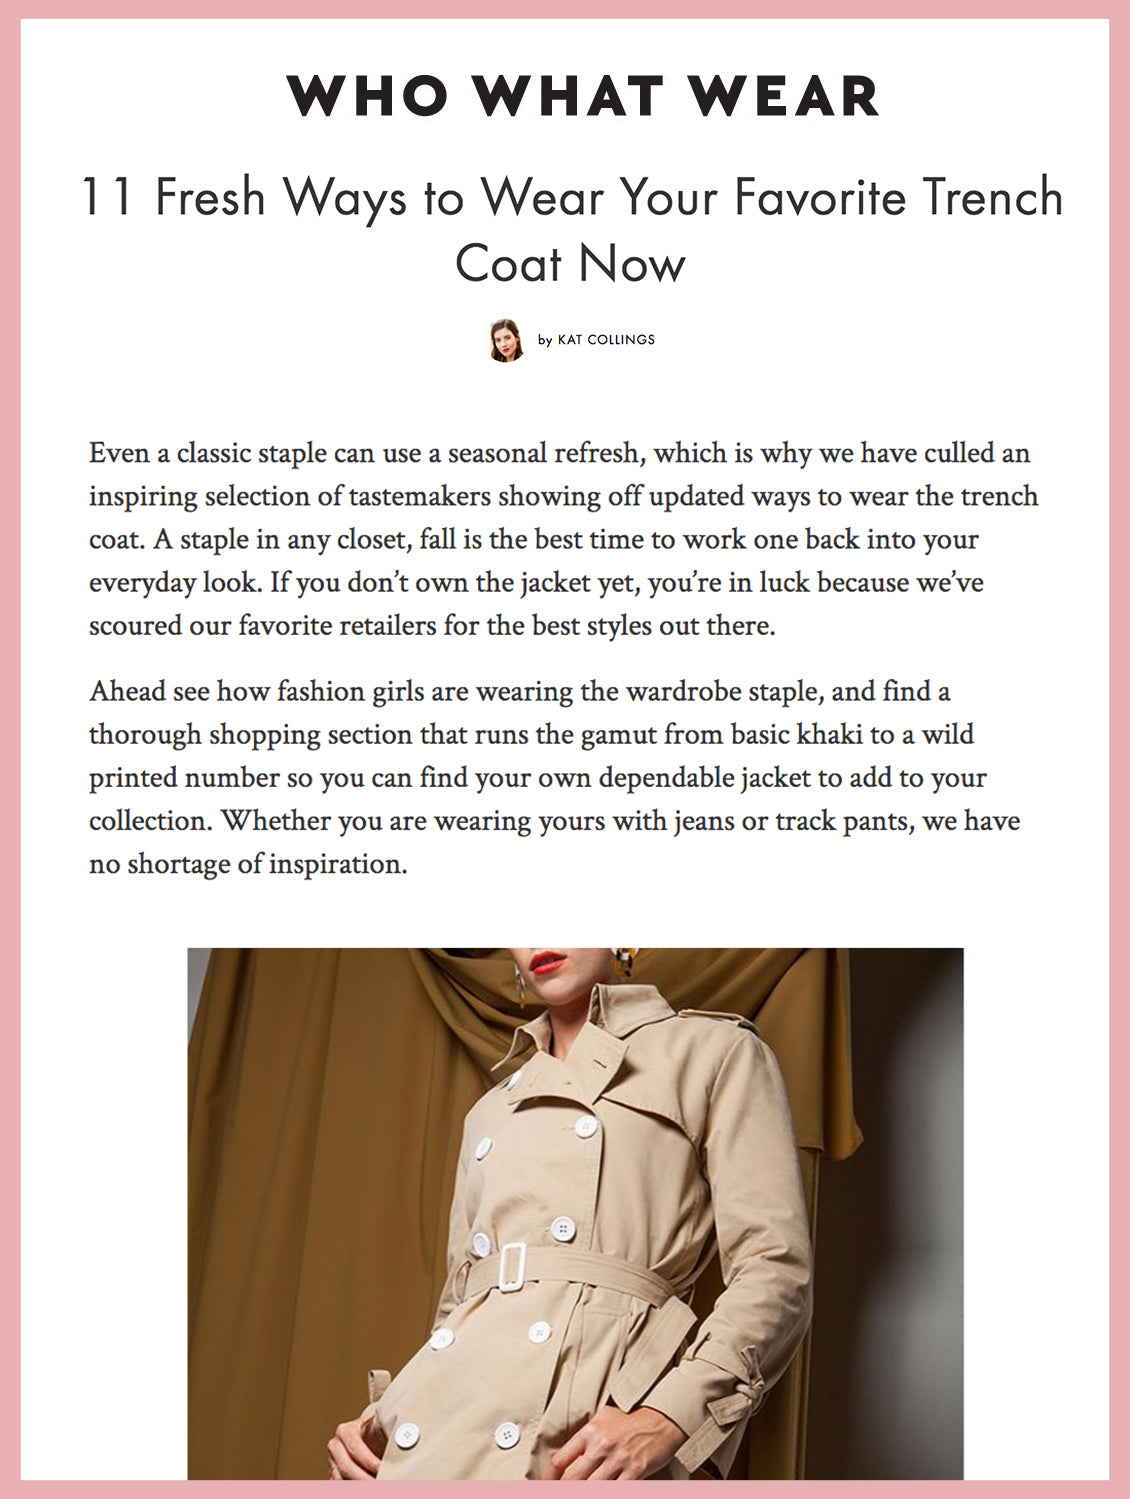 11-new-ways-how-to-wear-trench-coat-fall-fashion-coat-trend-2013